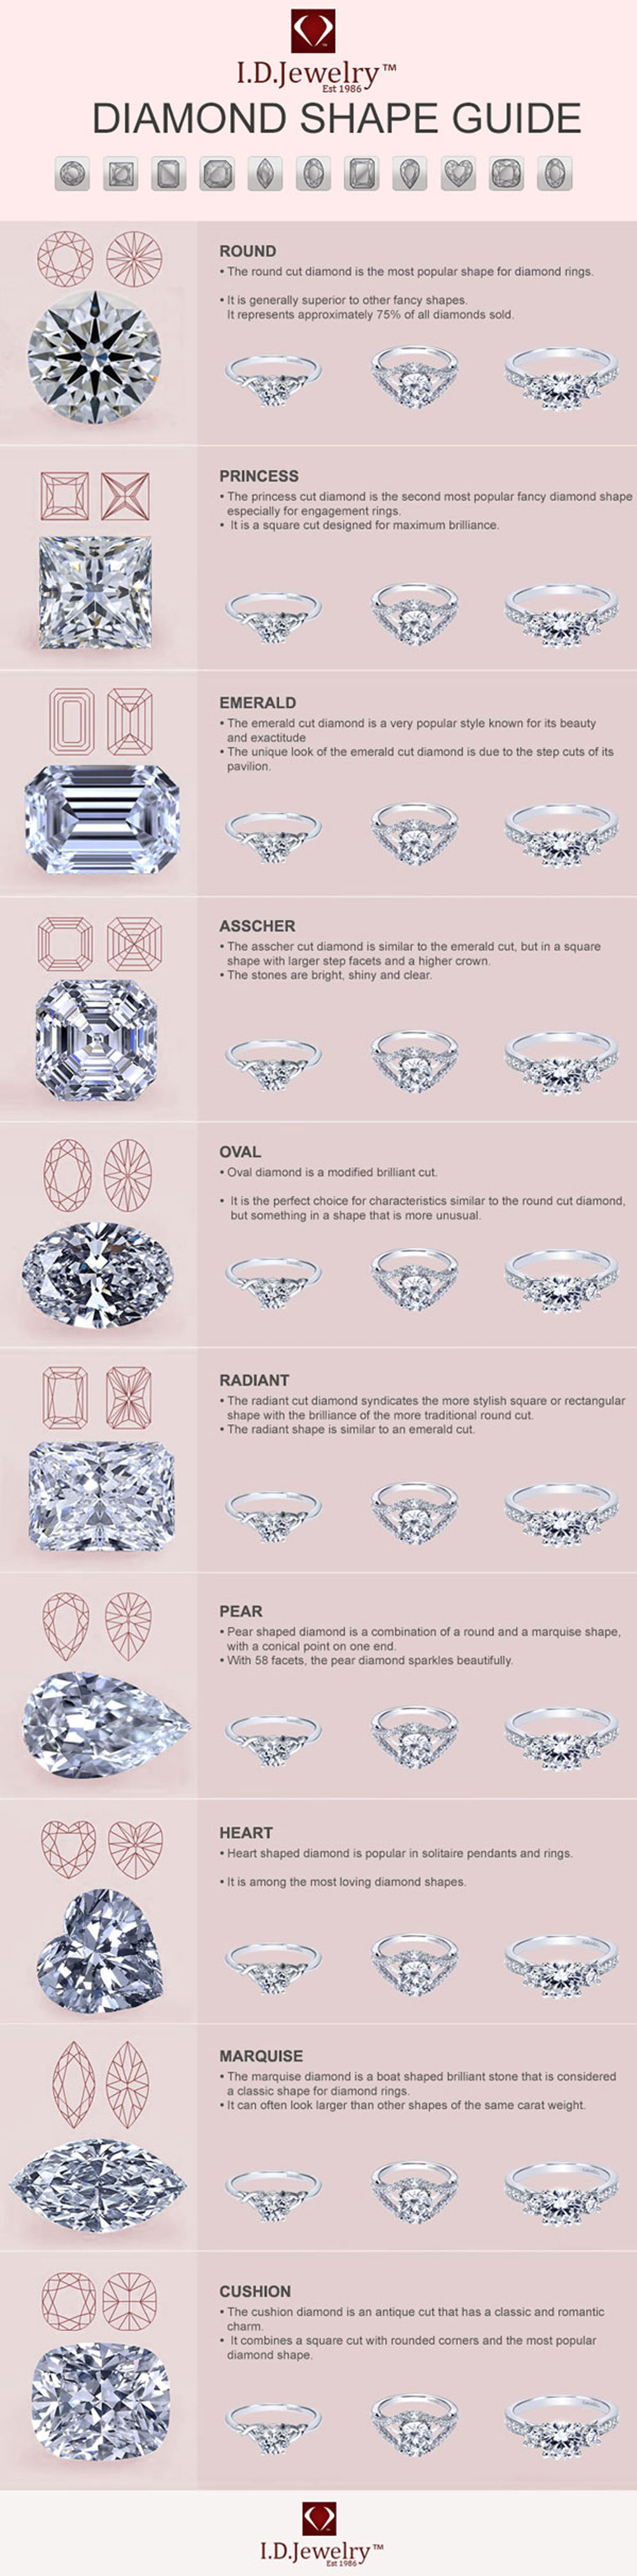 DIAMOND-SHAPES-INFOGRAPHIC-1